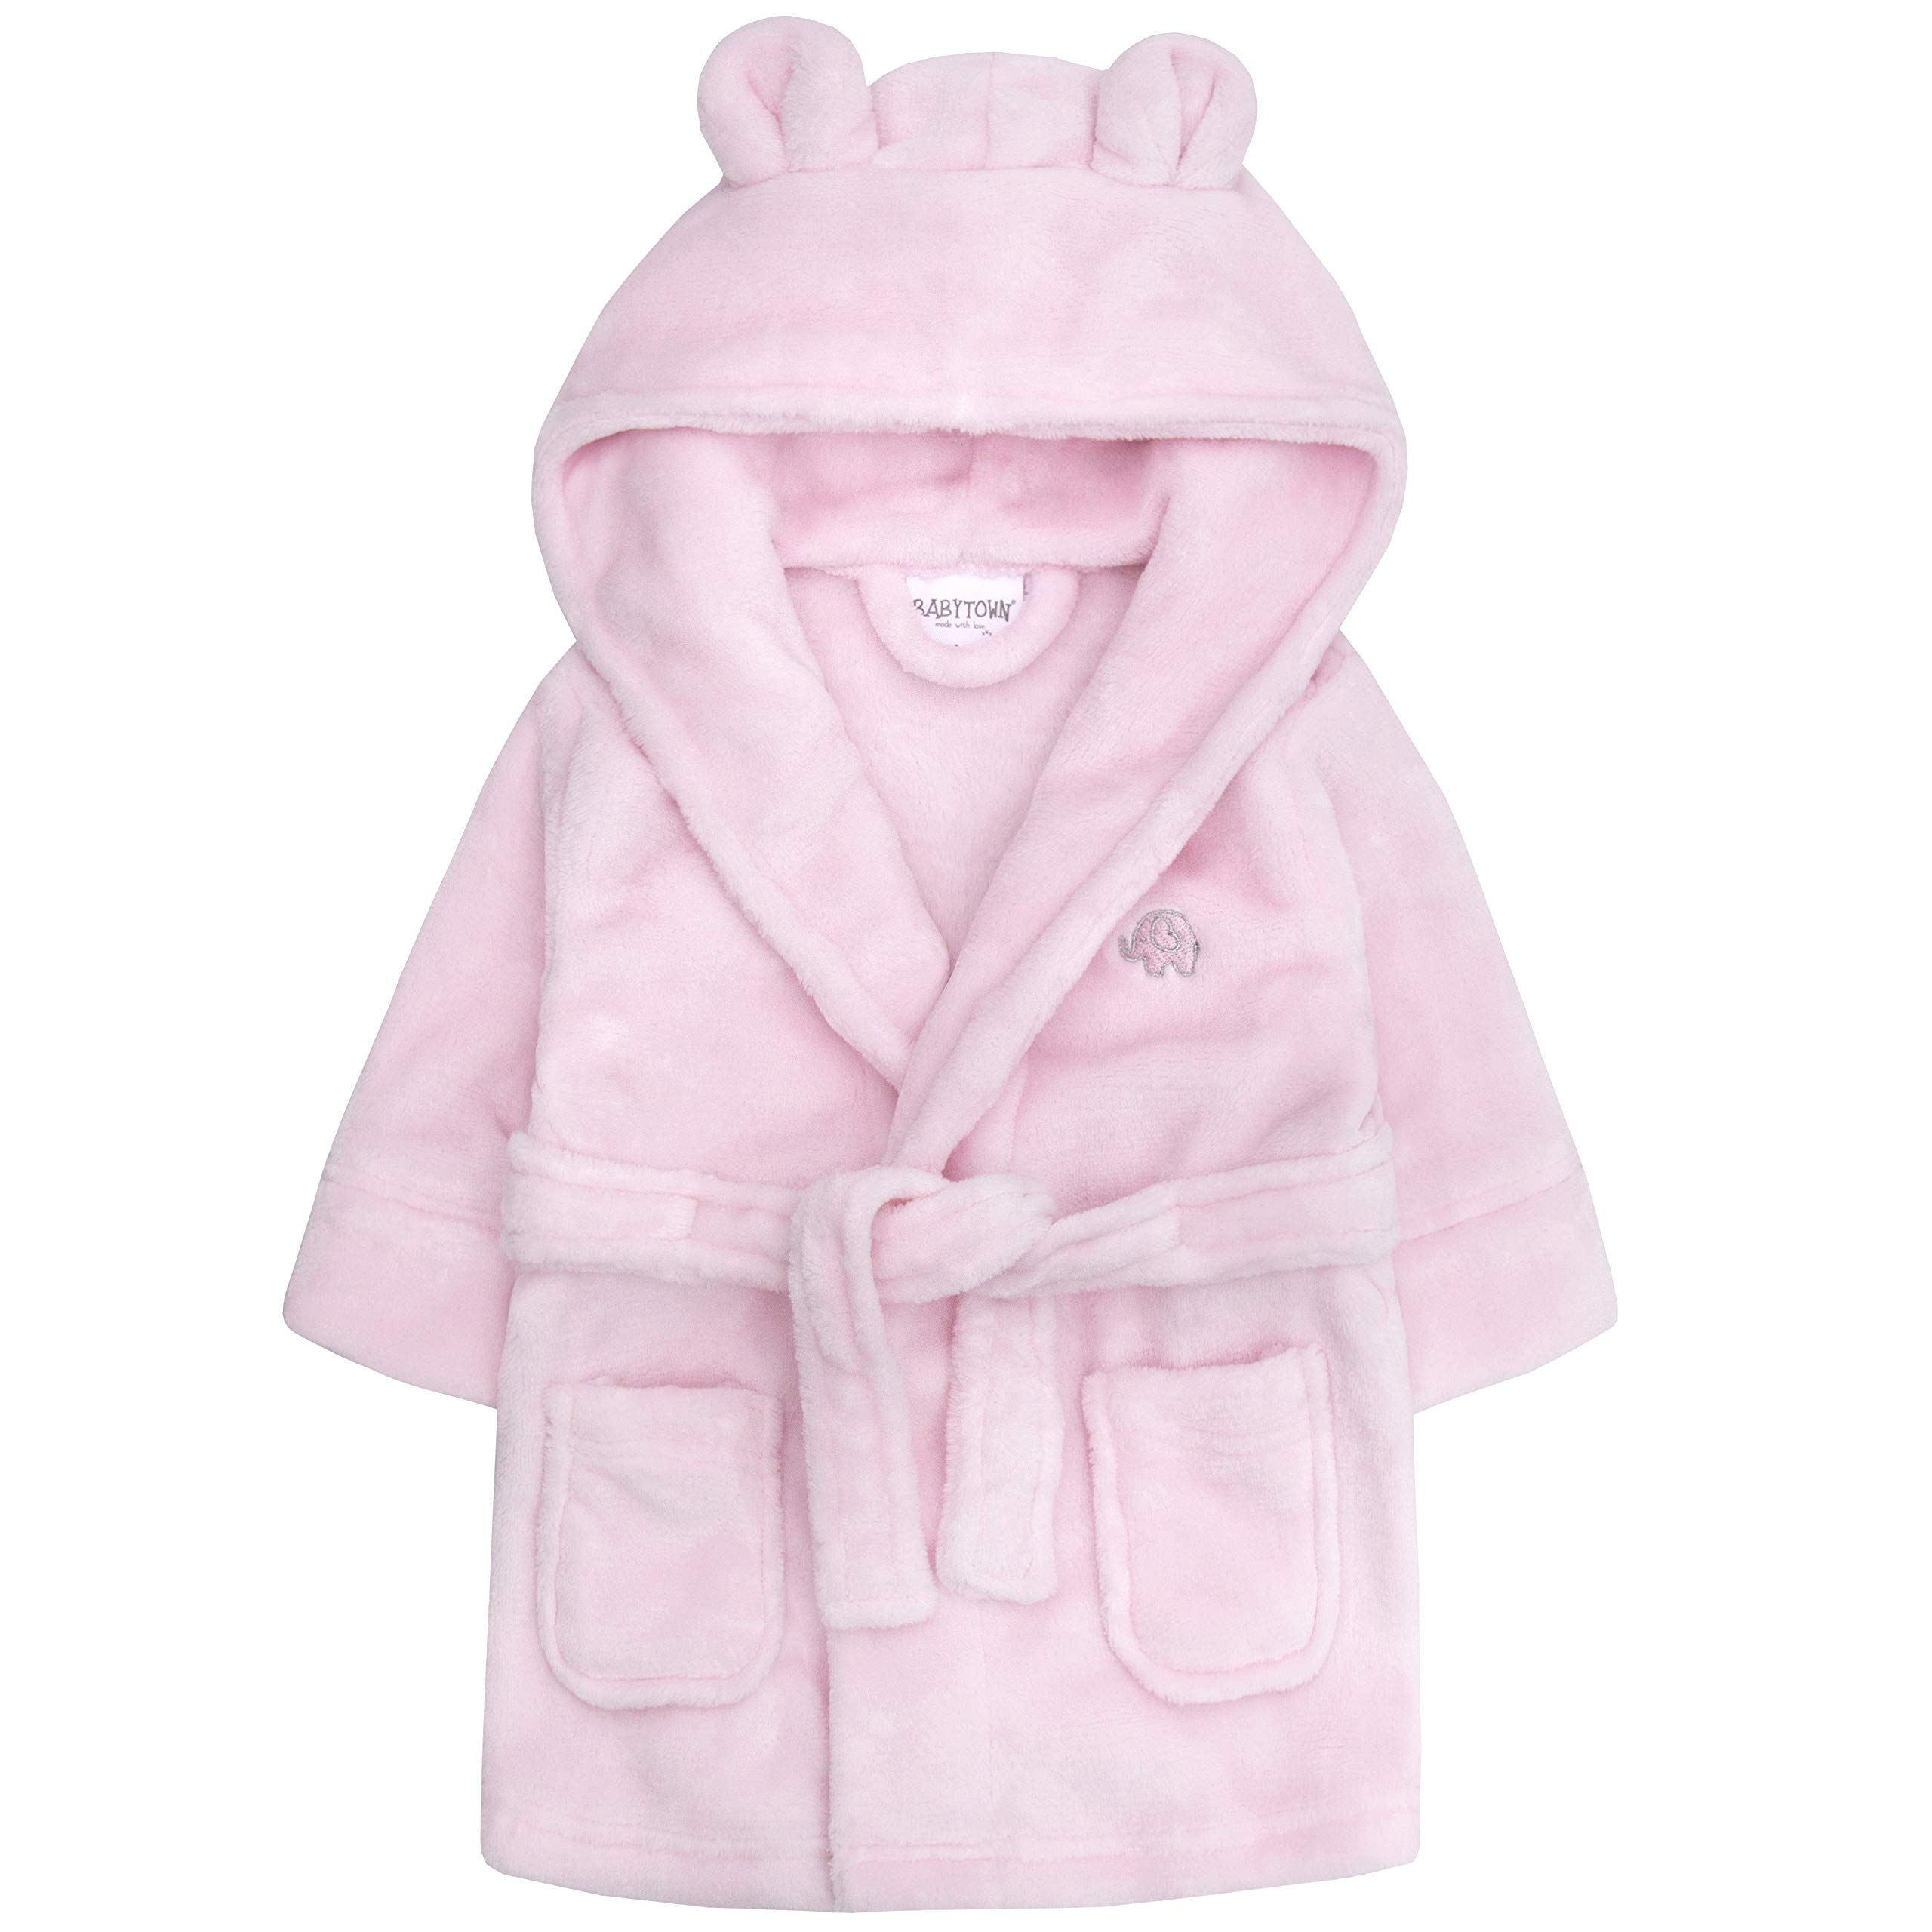 41ac1c8ab6 Best Rated in Baby Girls  Robes   Helpful Customer Reviews - Amazon.com